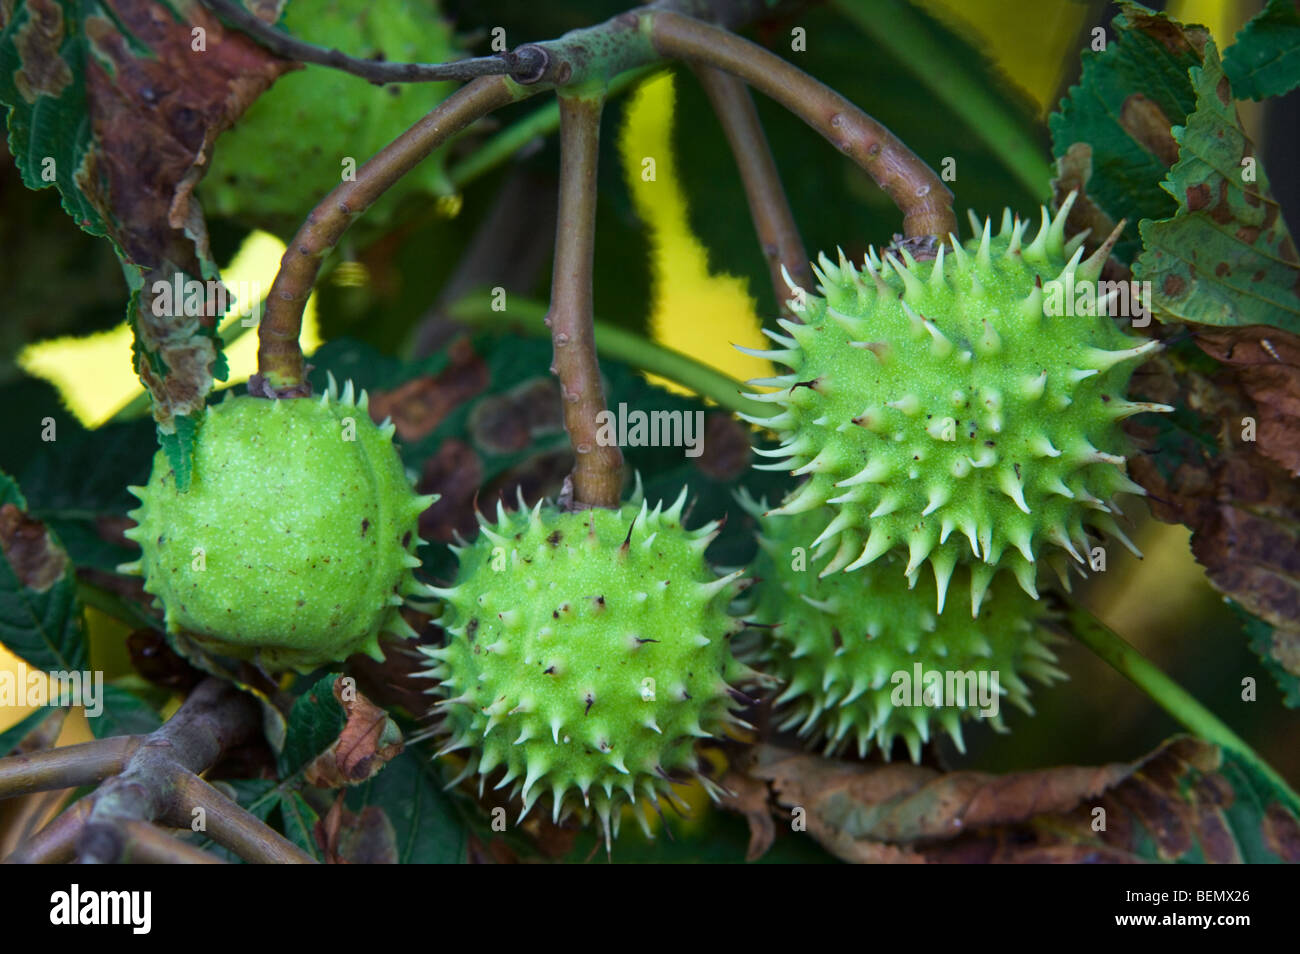 Common Horse Chestnut Unripe Seeds Shells Husks Conkers Stock Photo Royalty Free Image